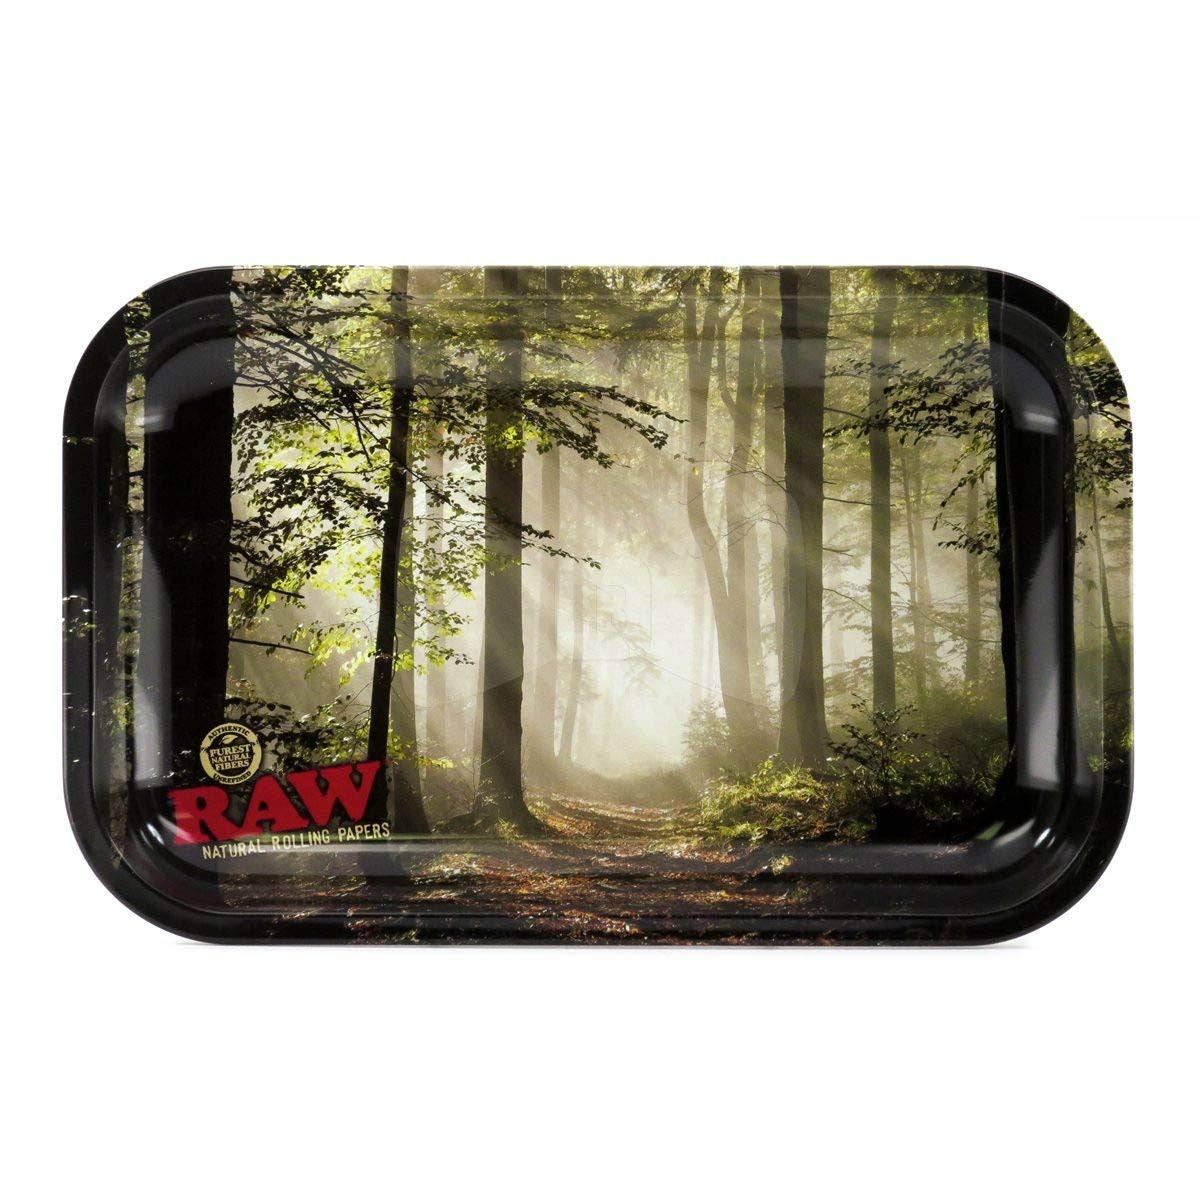 Raw Small Forest 18595 Metal Rolling Tray 27.5 x 17.5 cm Tin